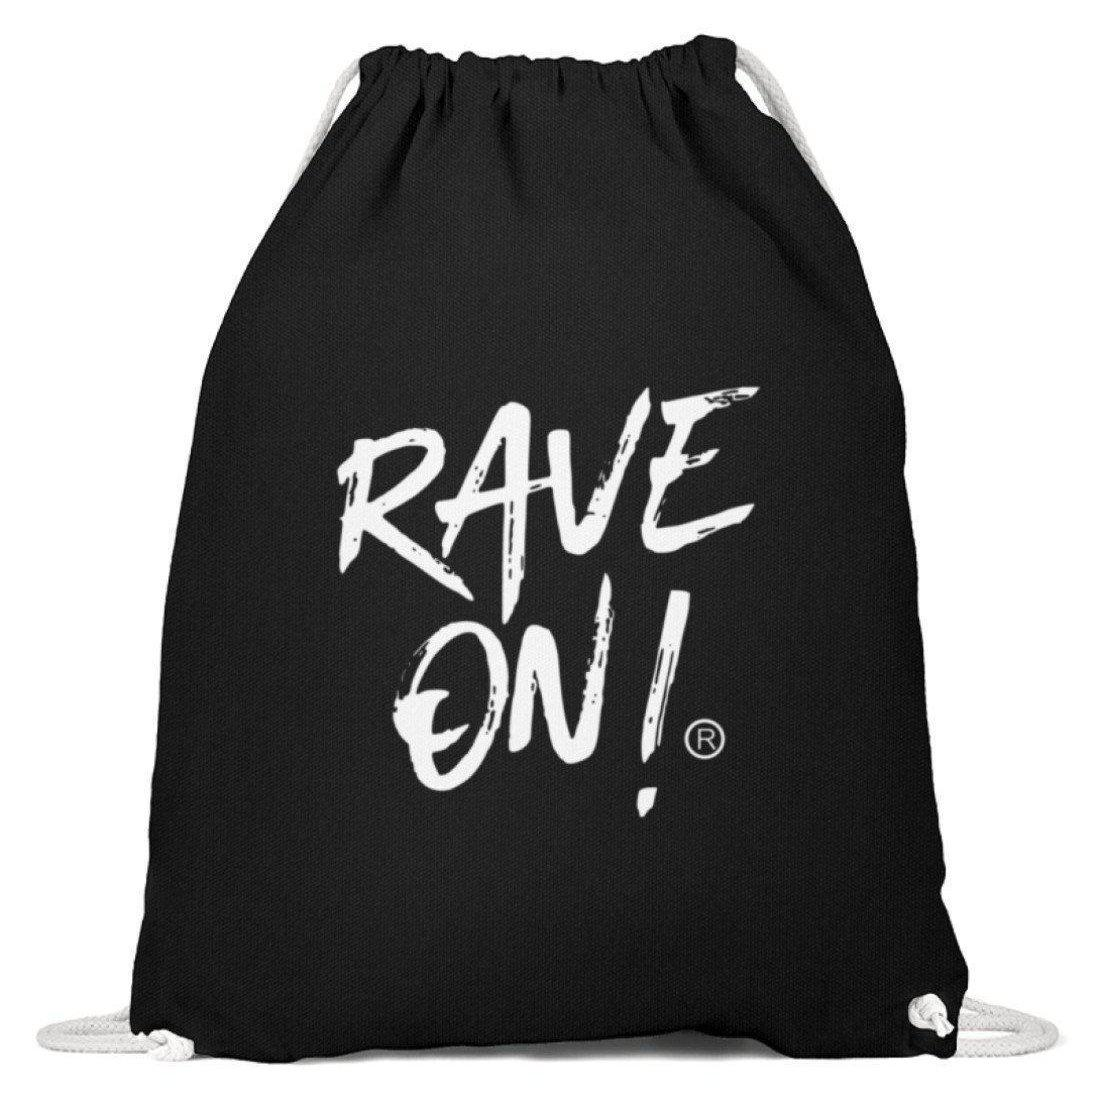 RAVE ON!® Black Collection - Baumwoll Gymsac Baumwoll Gymsac Schwarz - Rave On!® der Club & Techno Szene Shop für Coole Junge Mode Streetwear Style & Fashion Outfits + Sexy Festival 420 Stuff